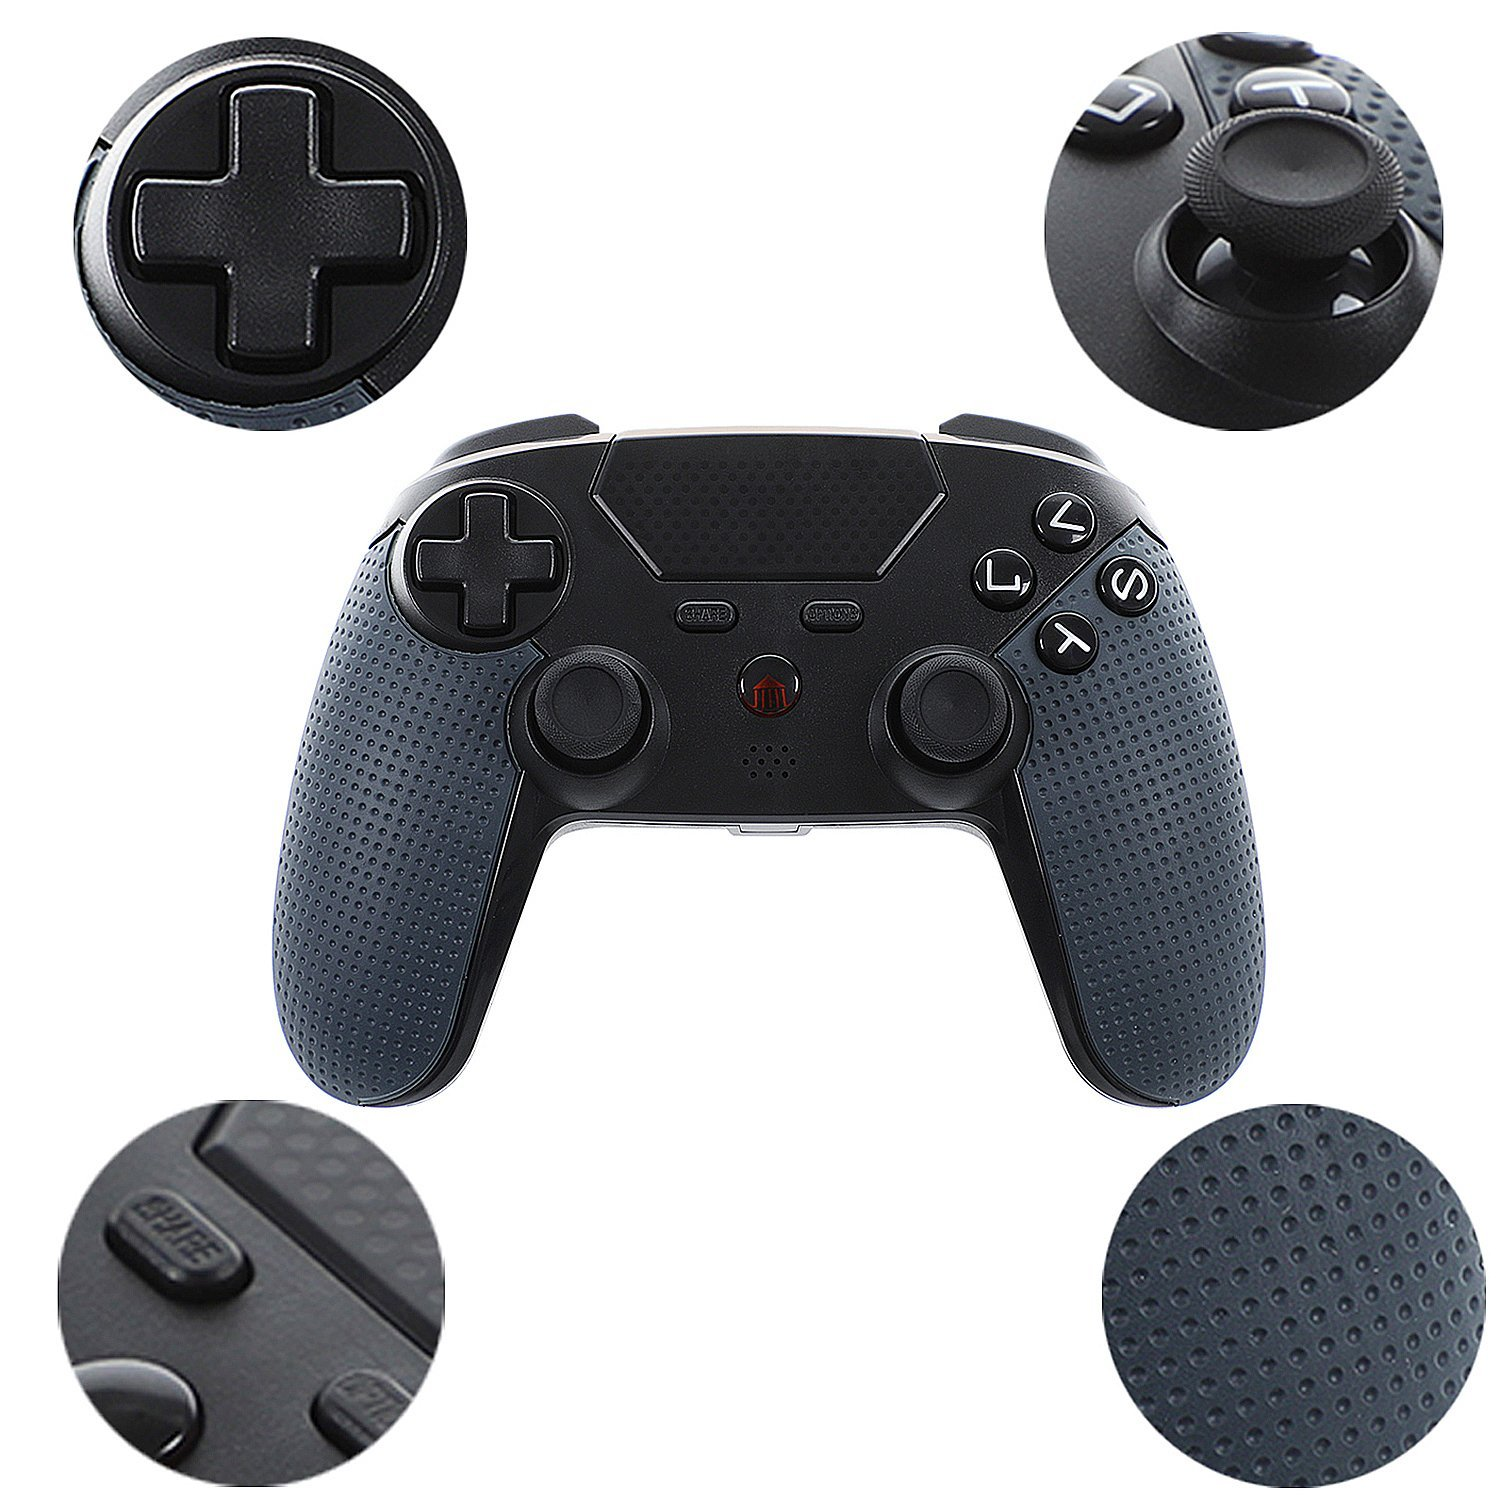 Wireless game controller for PS4